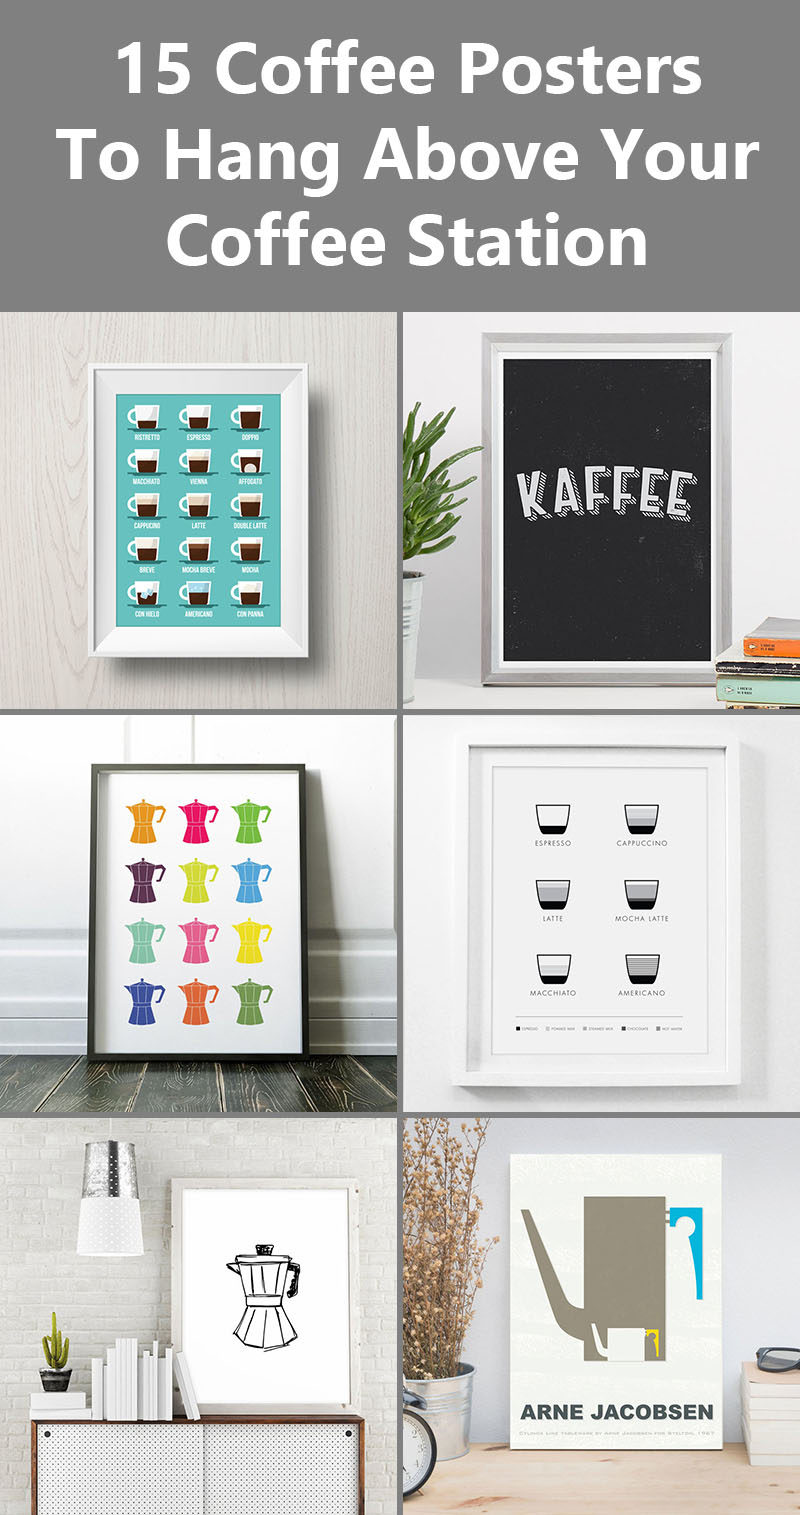 15 Coffee Posters To Hang Above Your Coffee Station